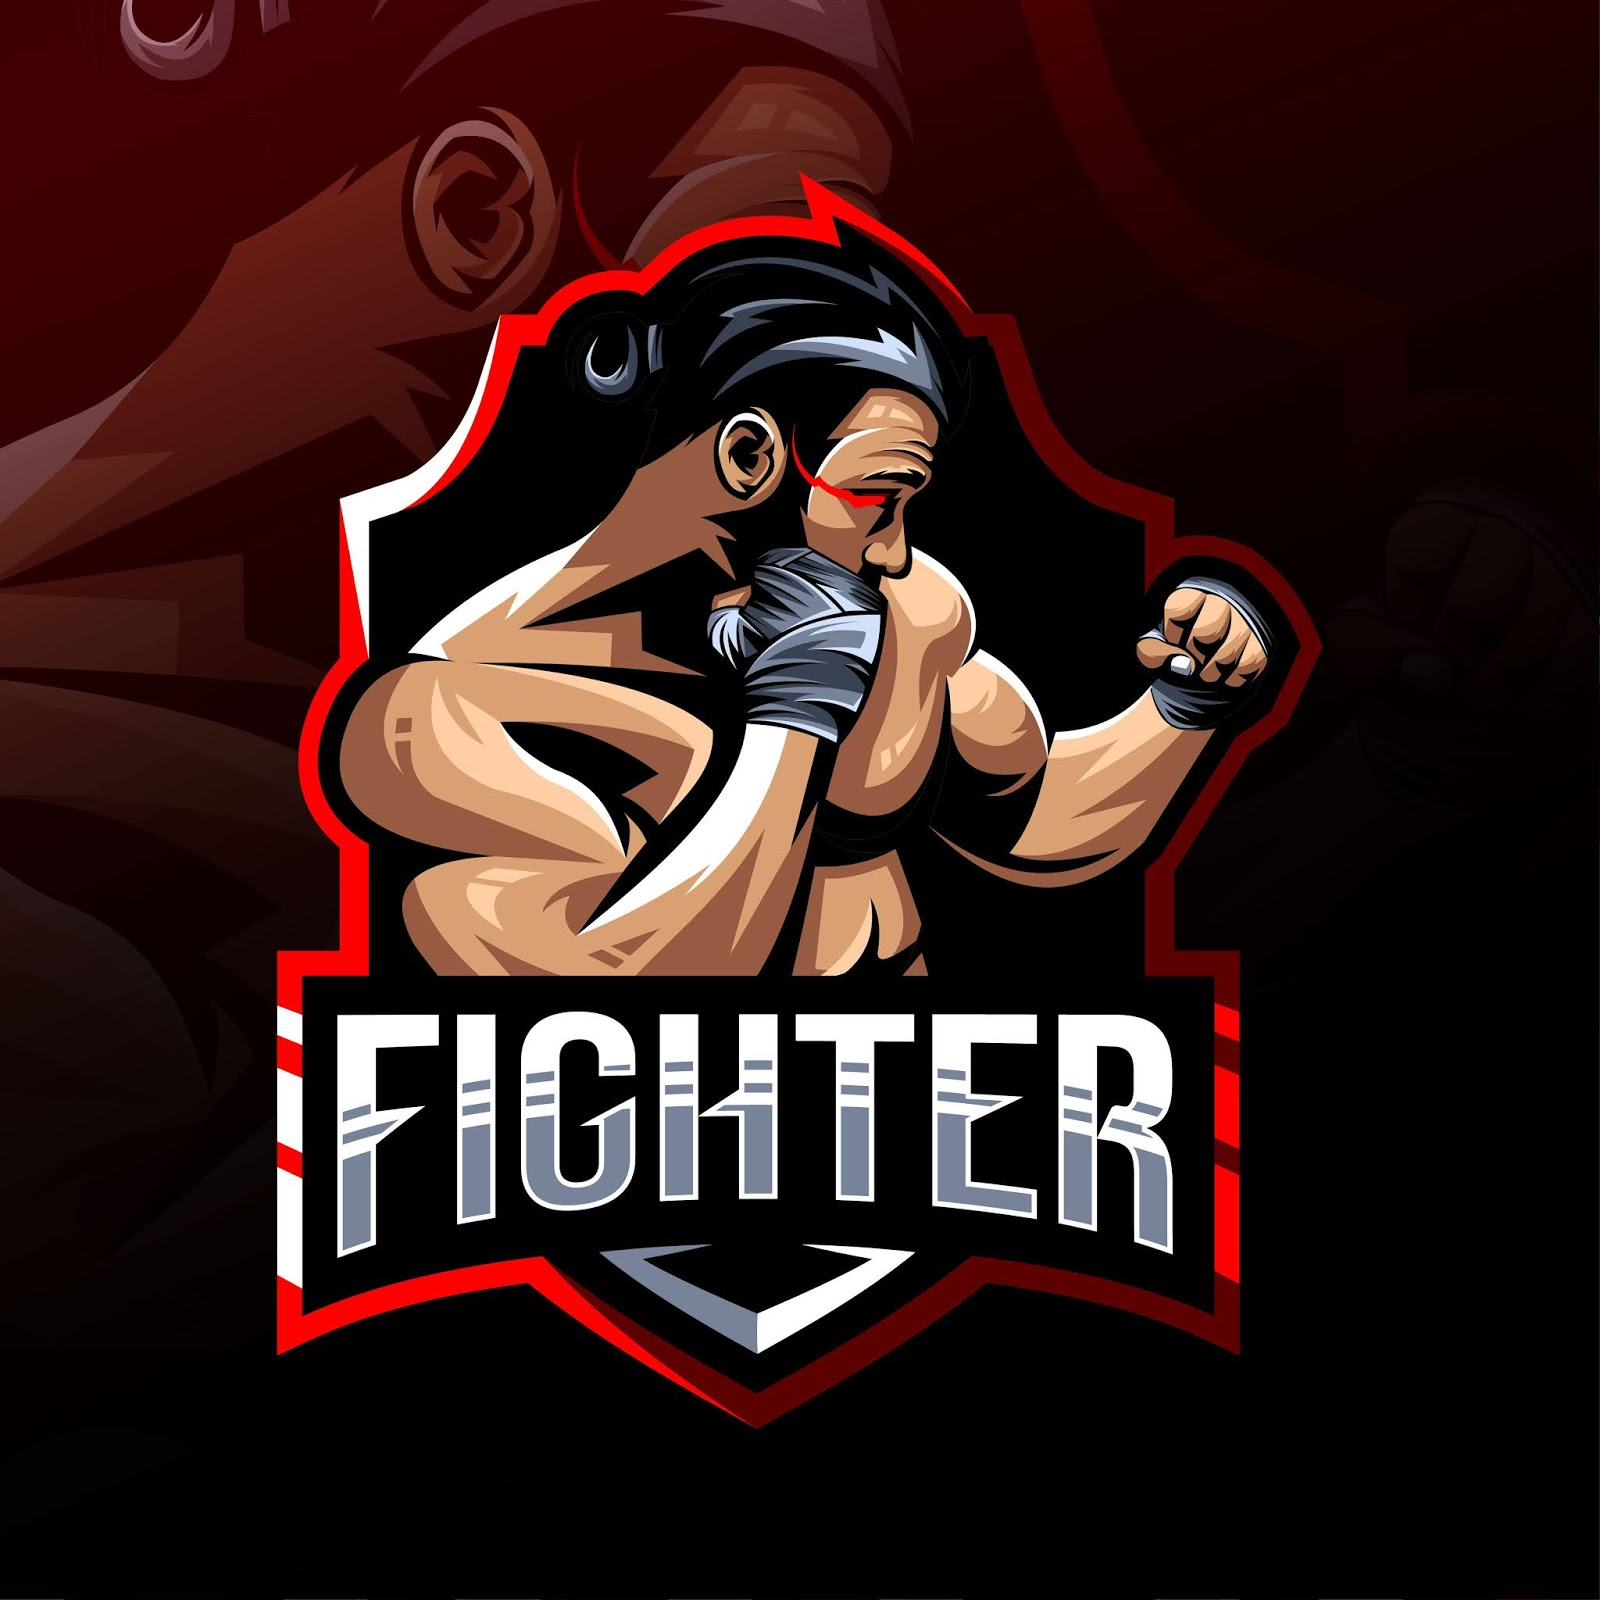 Fighter Mascot Logo Esport Free Download Vector CDR, AI, EPS and PNG Formats